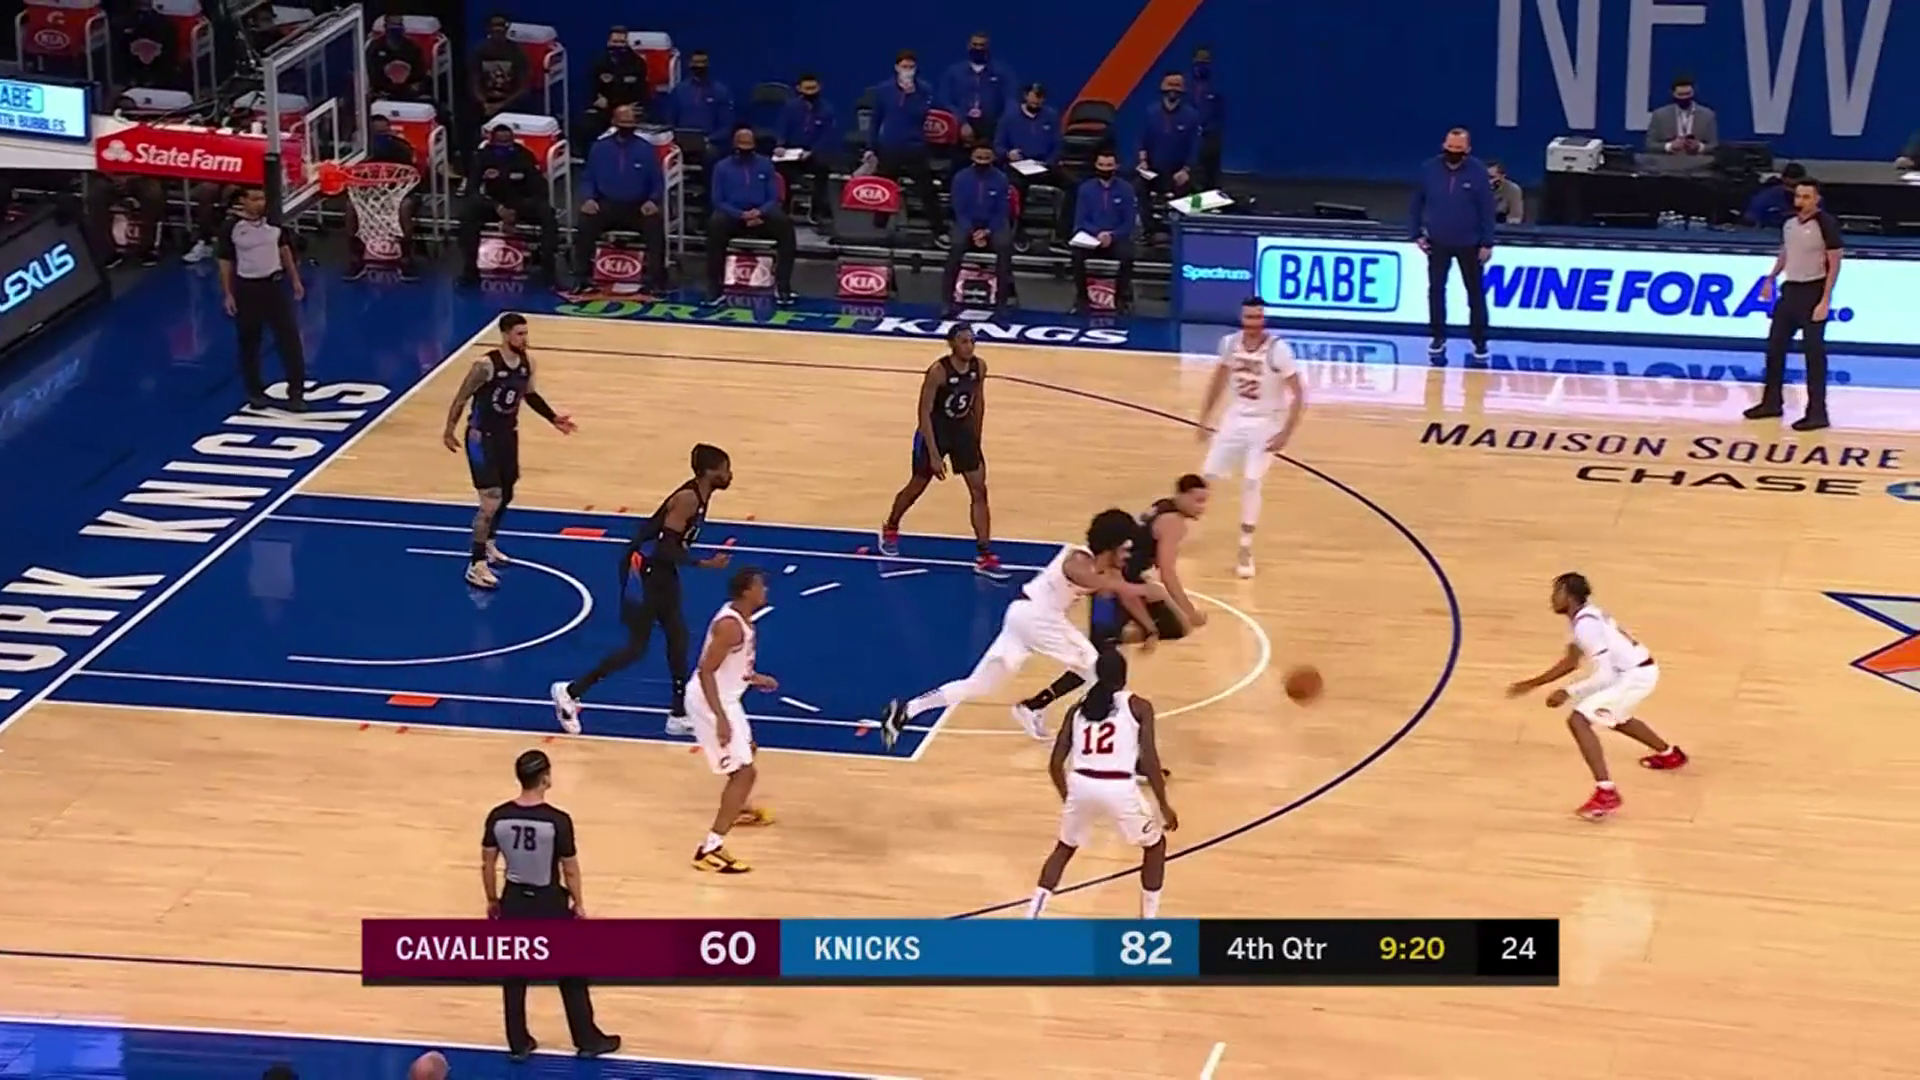 Garland Tries to Bring Cavs within Striking Distance